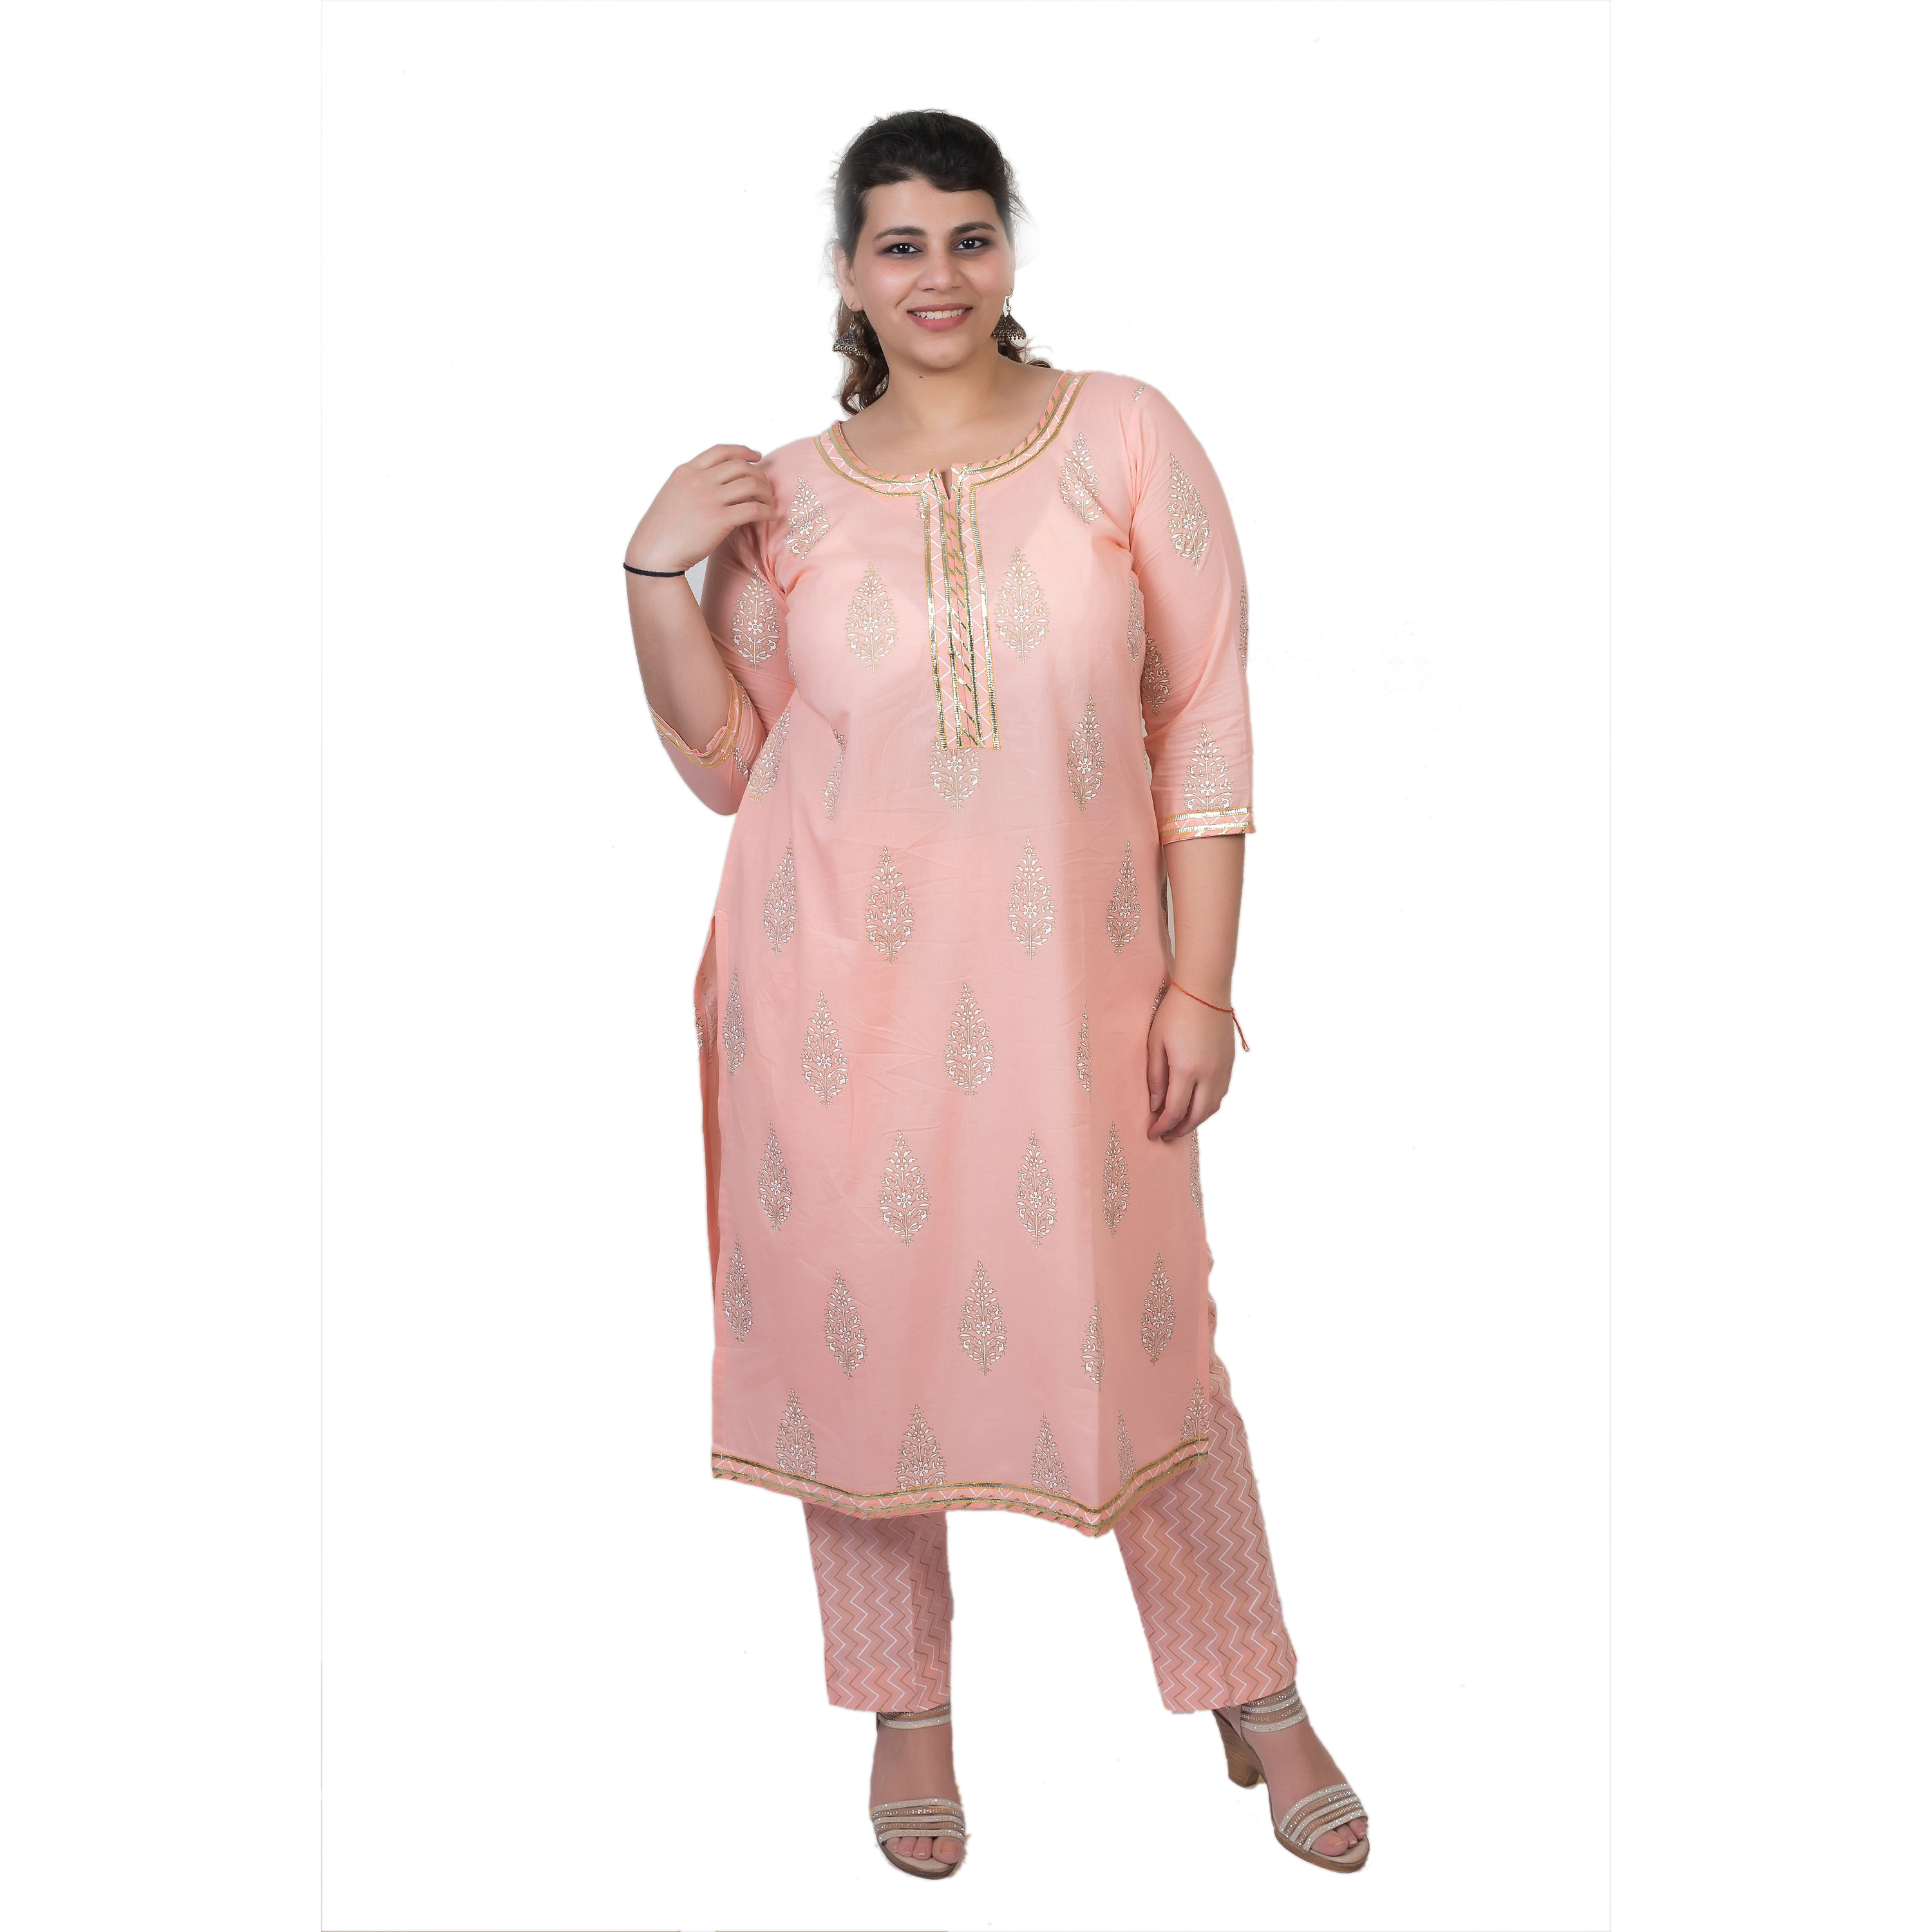 a333259e72f4 Damyantii Plus Size 2XL 3XL 4XL 5XL Kurtas for Women in Peach Color with  Gota Detailing and Handblock Print All Over in Chest Sizes 48, 52, 56 & 60  inches